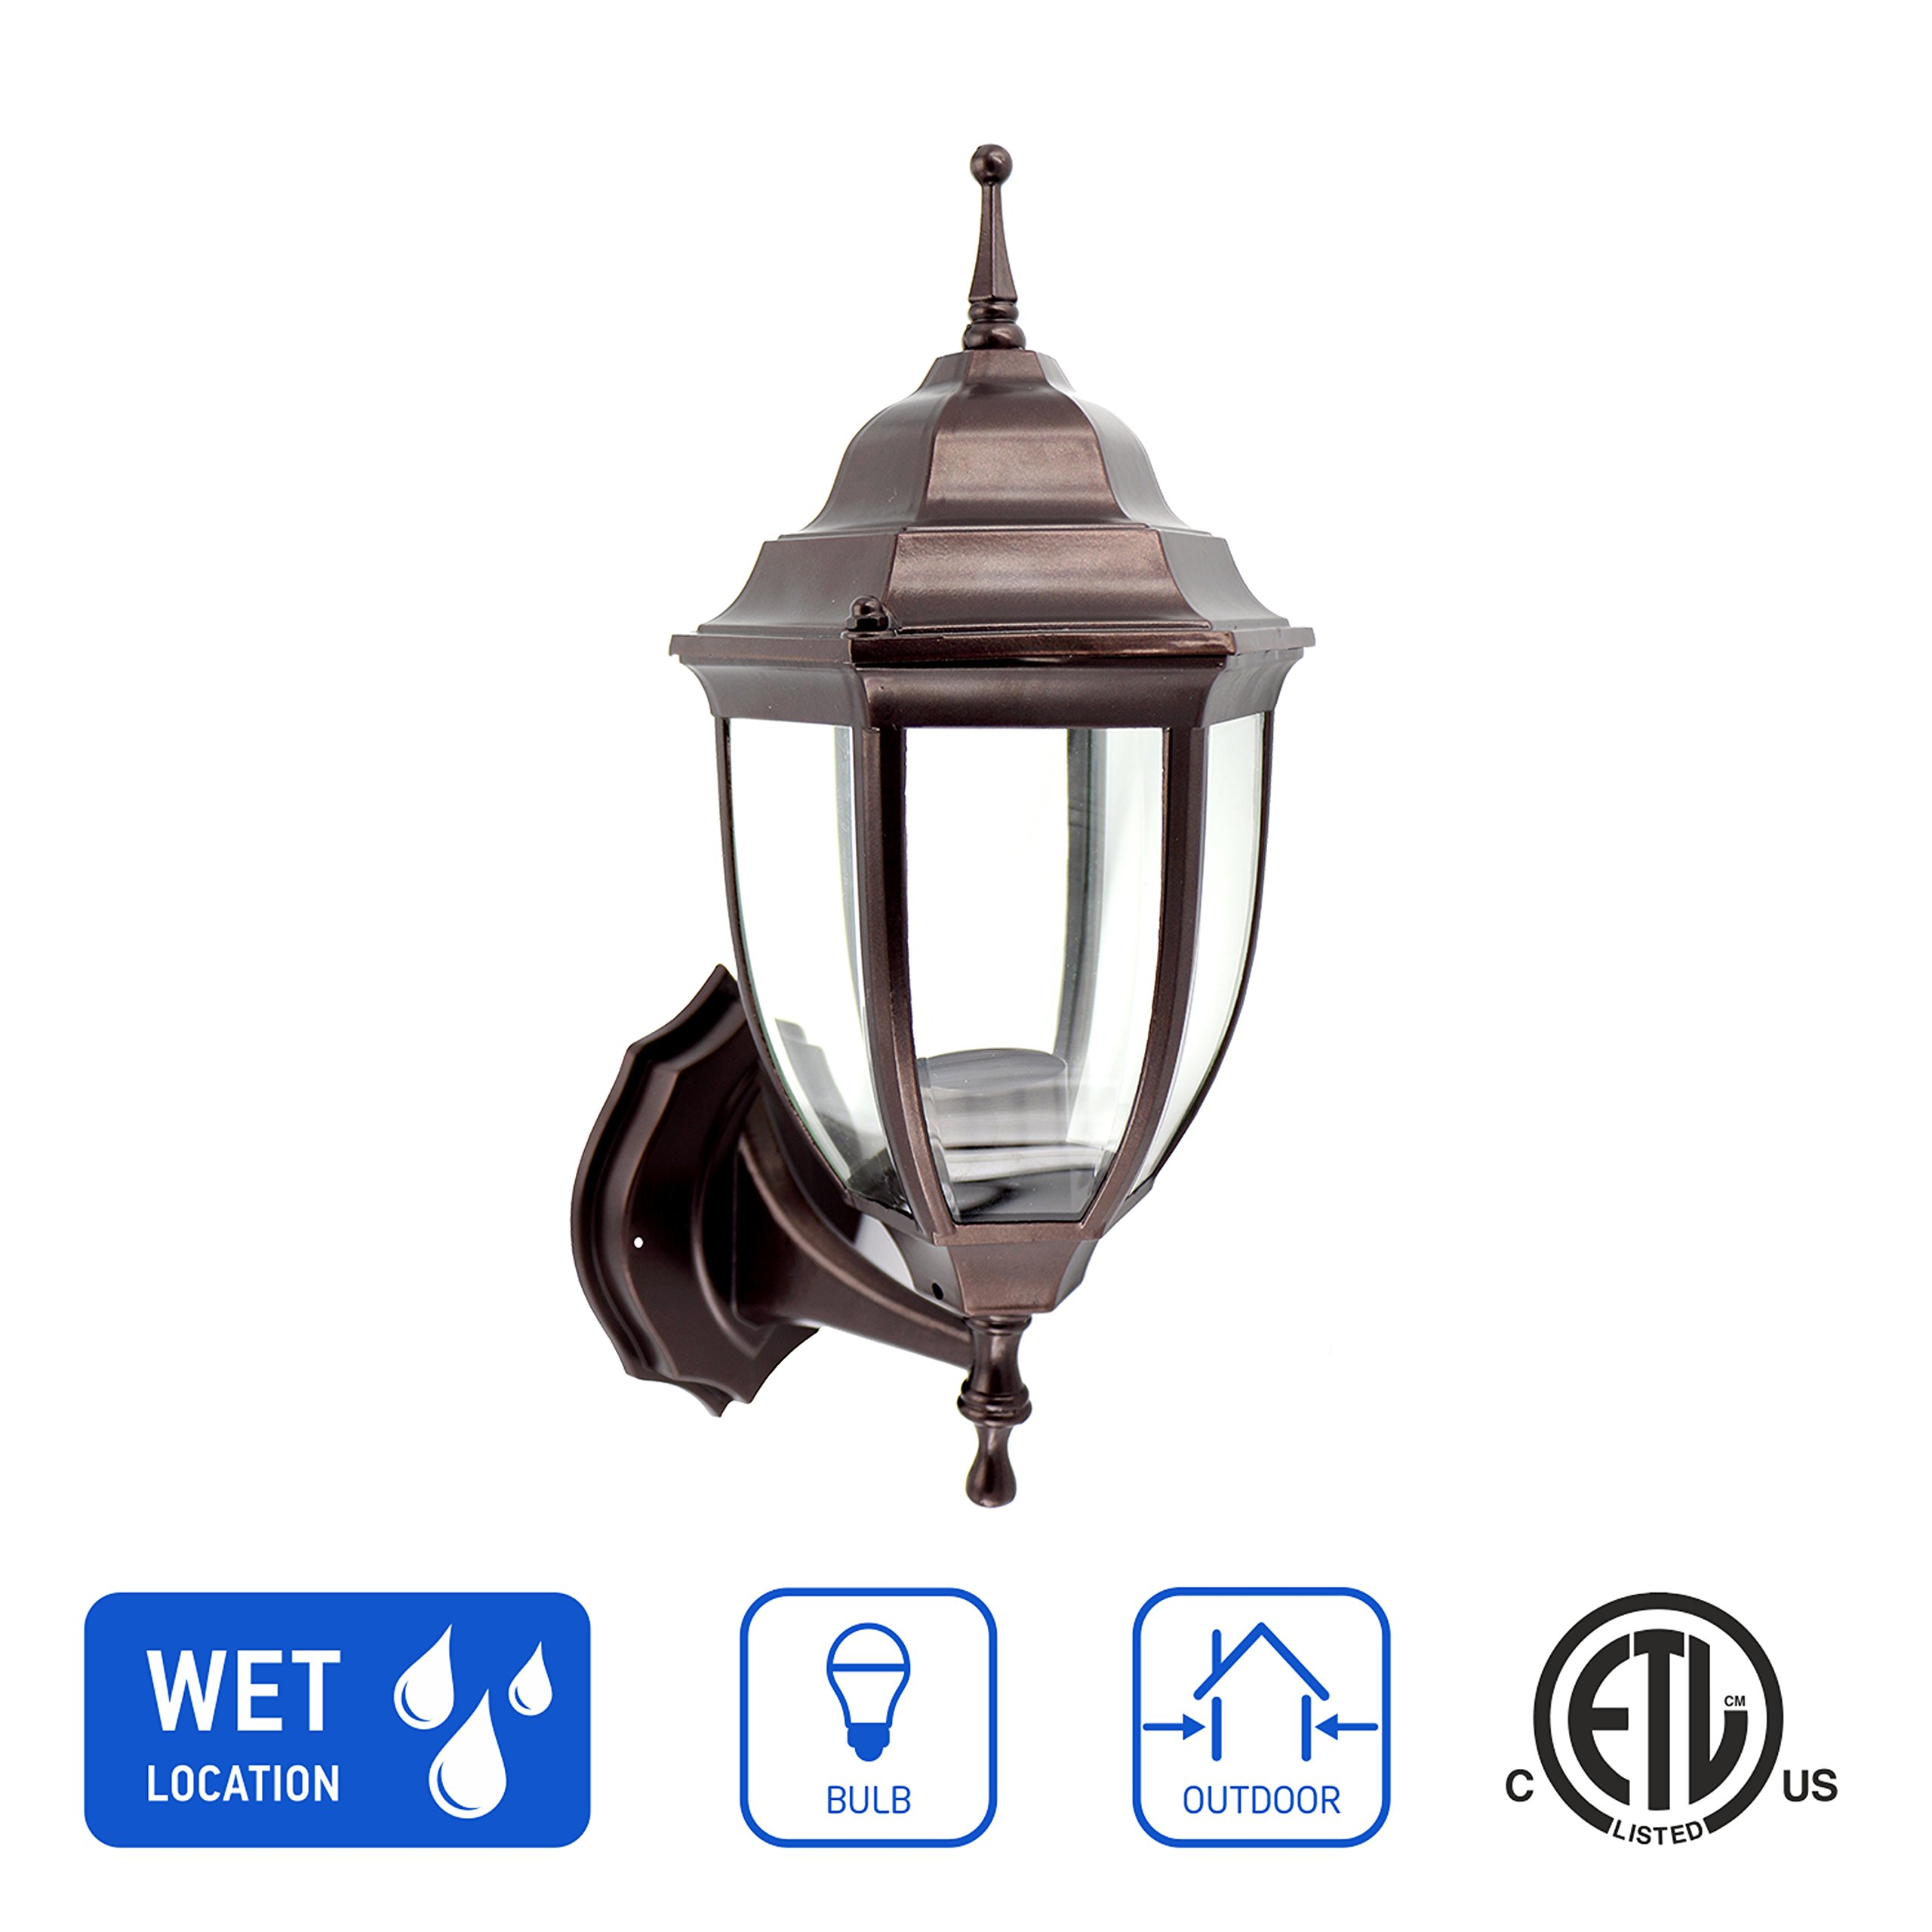 in Home 1-Light Outdoor Wall Mount Lantern Upward Fixture L04 Series Traditional Design Bronze Finish, Clear Glass Shade, ETL Listed